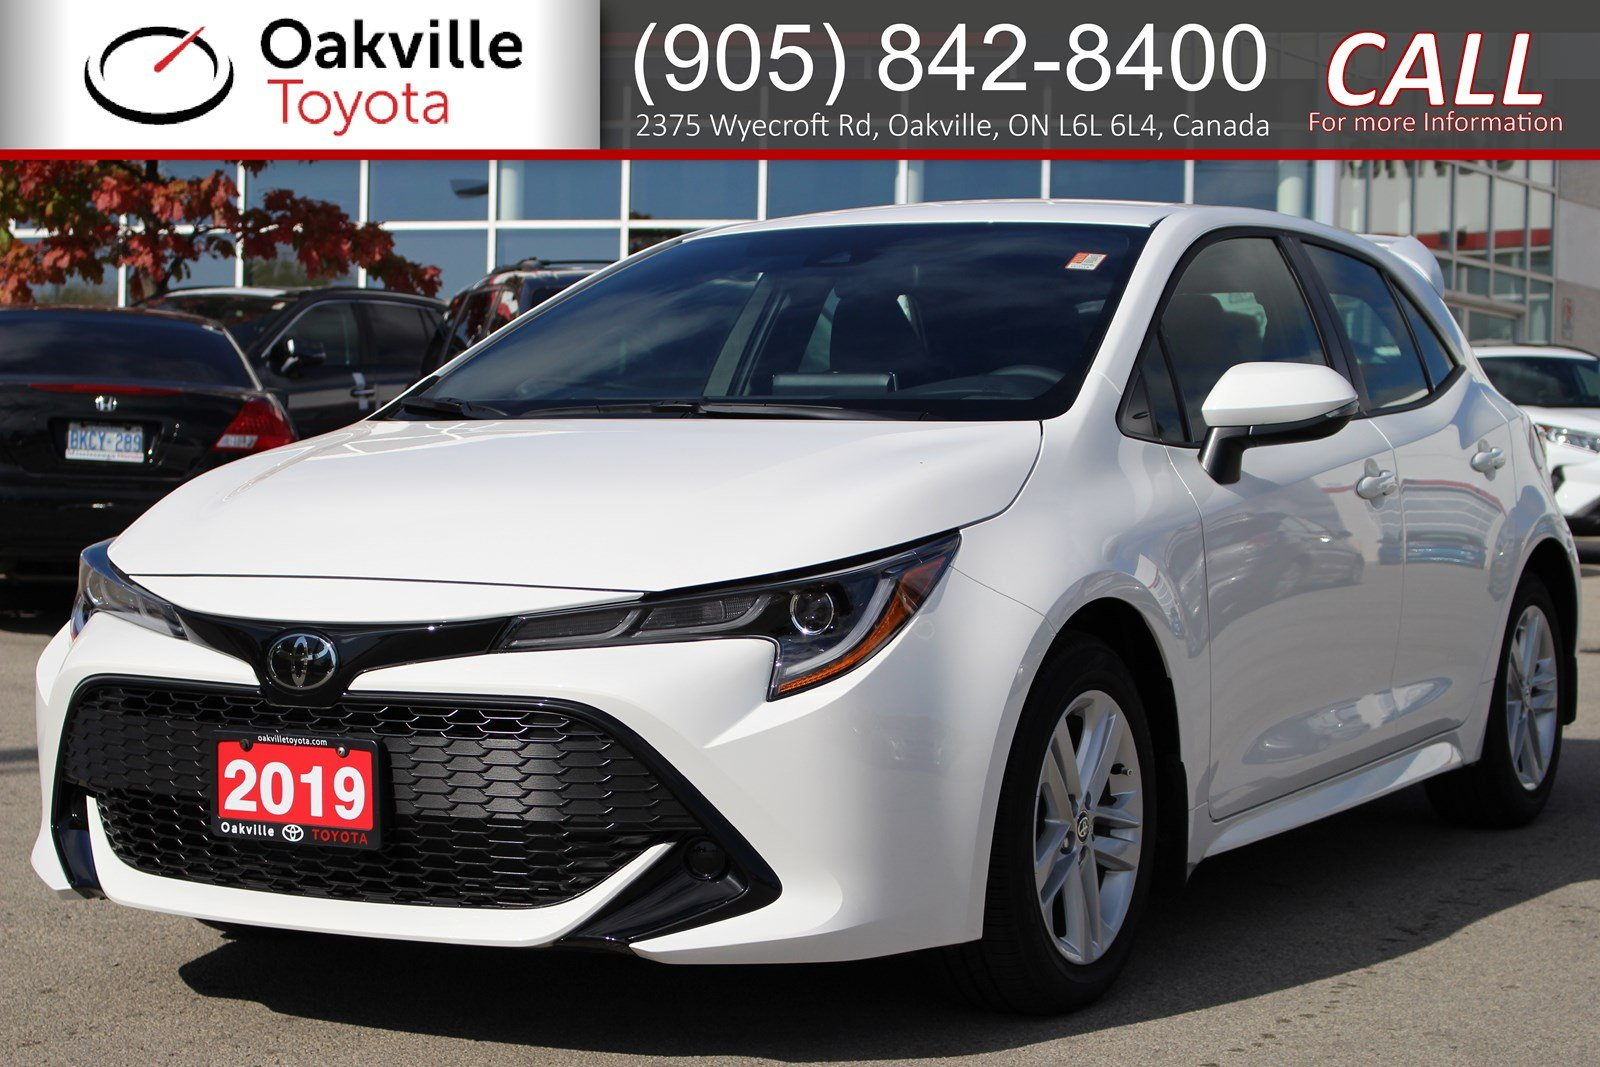 Pre-Owned 2019 Toyota Corolla Hatchback SE with Clean Carfax and One Owner